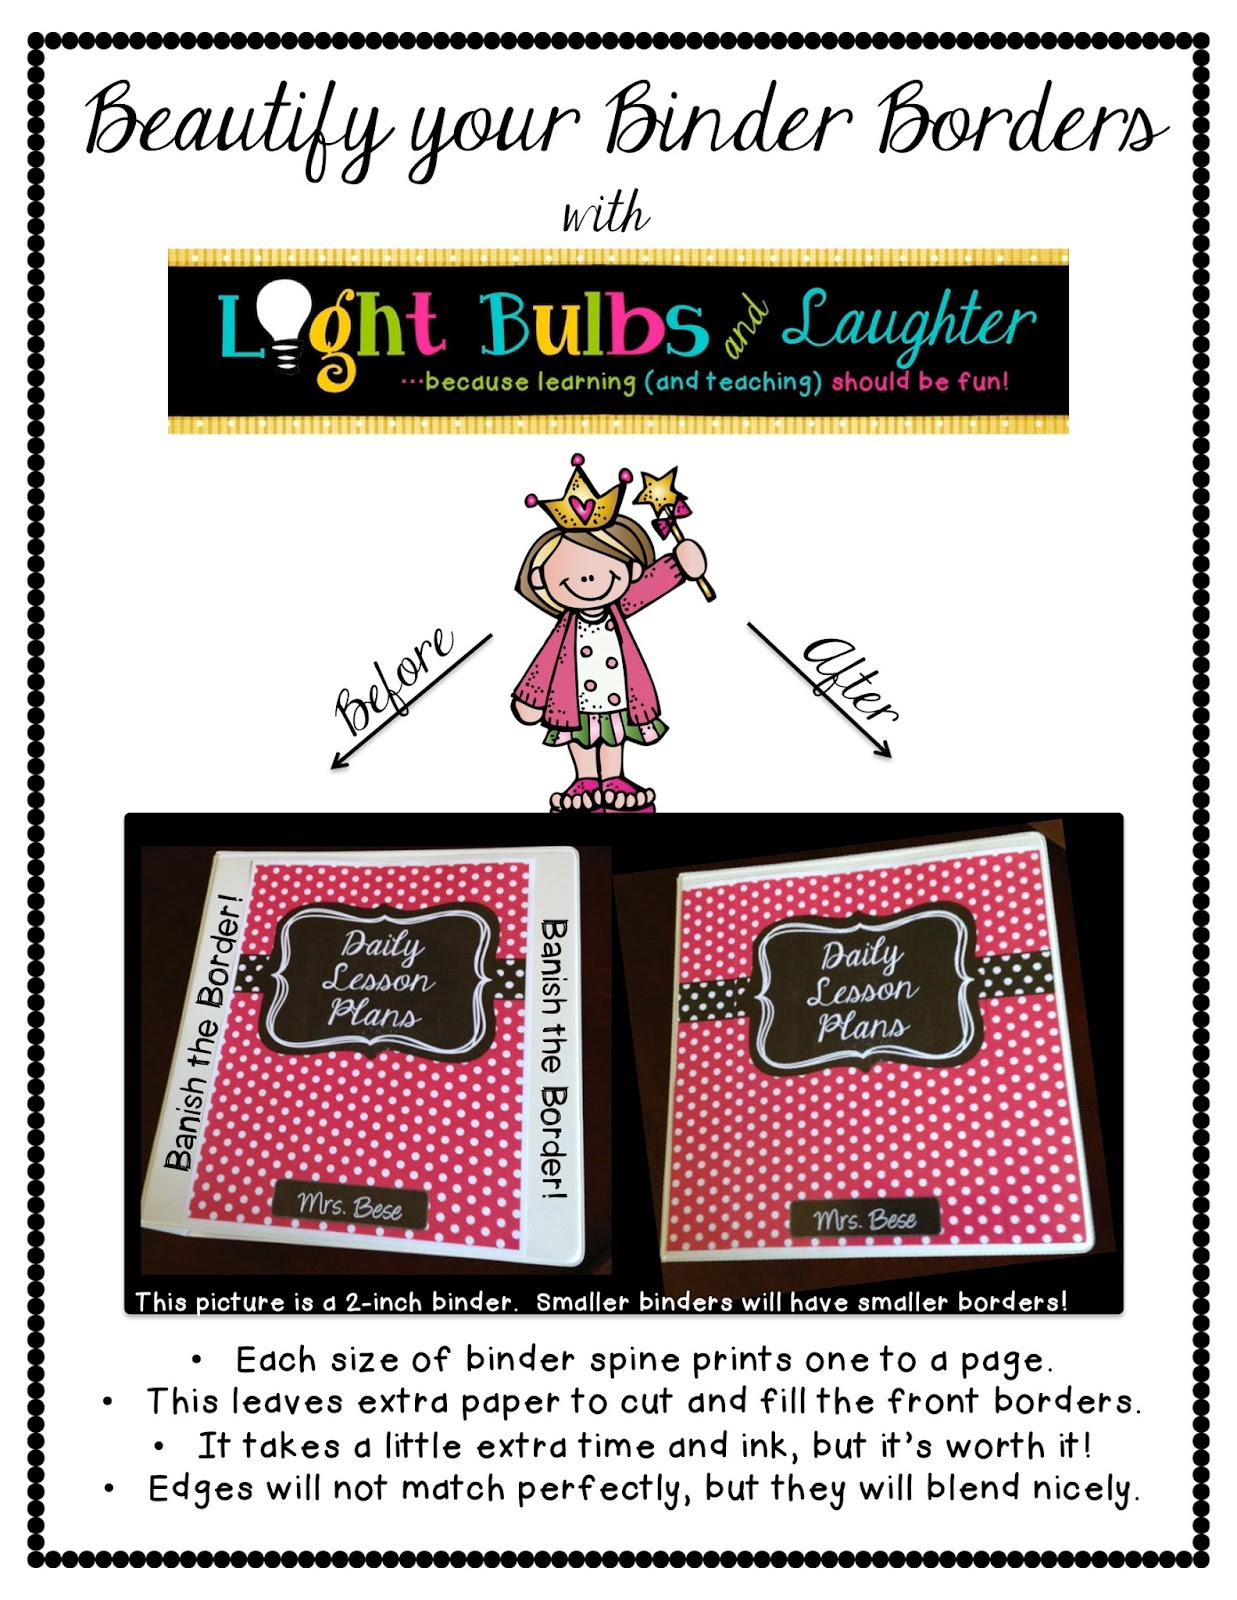 Light Bulbs and Laughter - How to Make Your Binders Beautiful, For Free